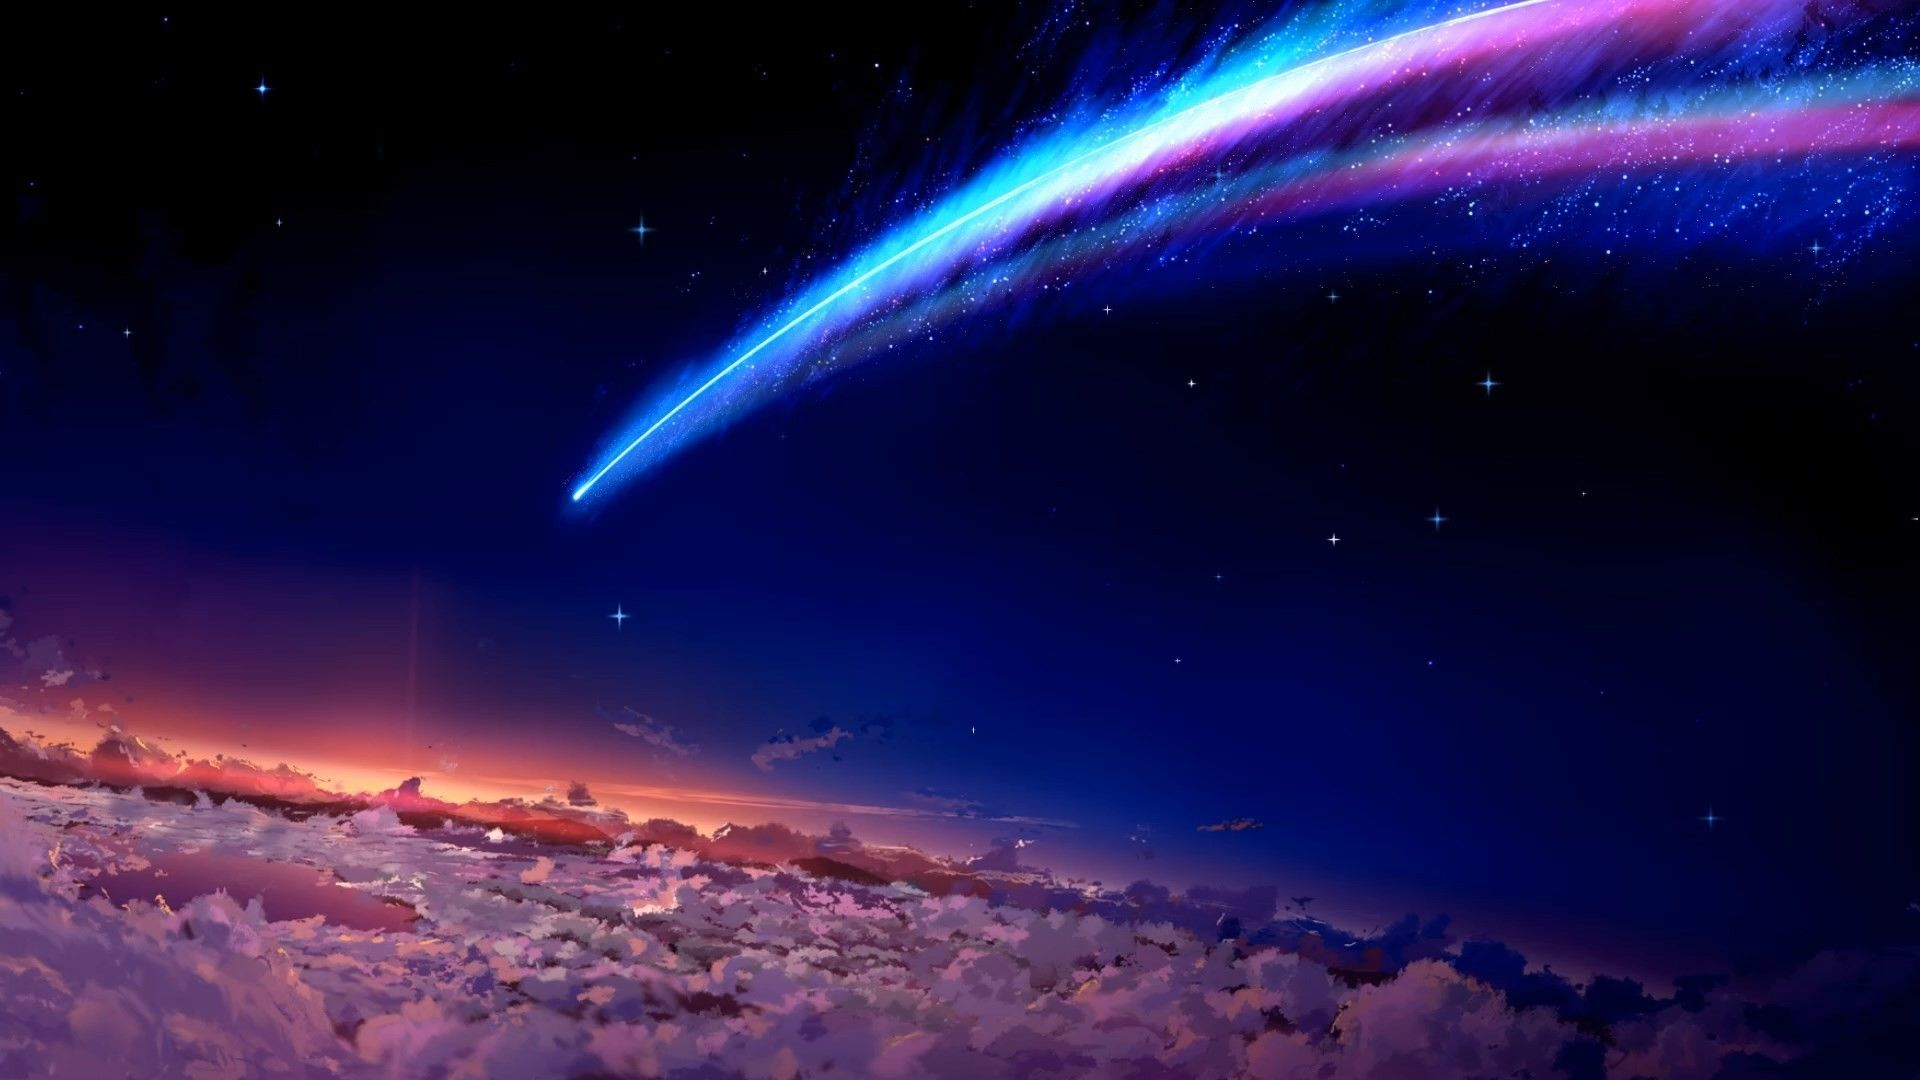 Anime Wallpaper Space , HD Wallpaper & Backgrounds